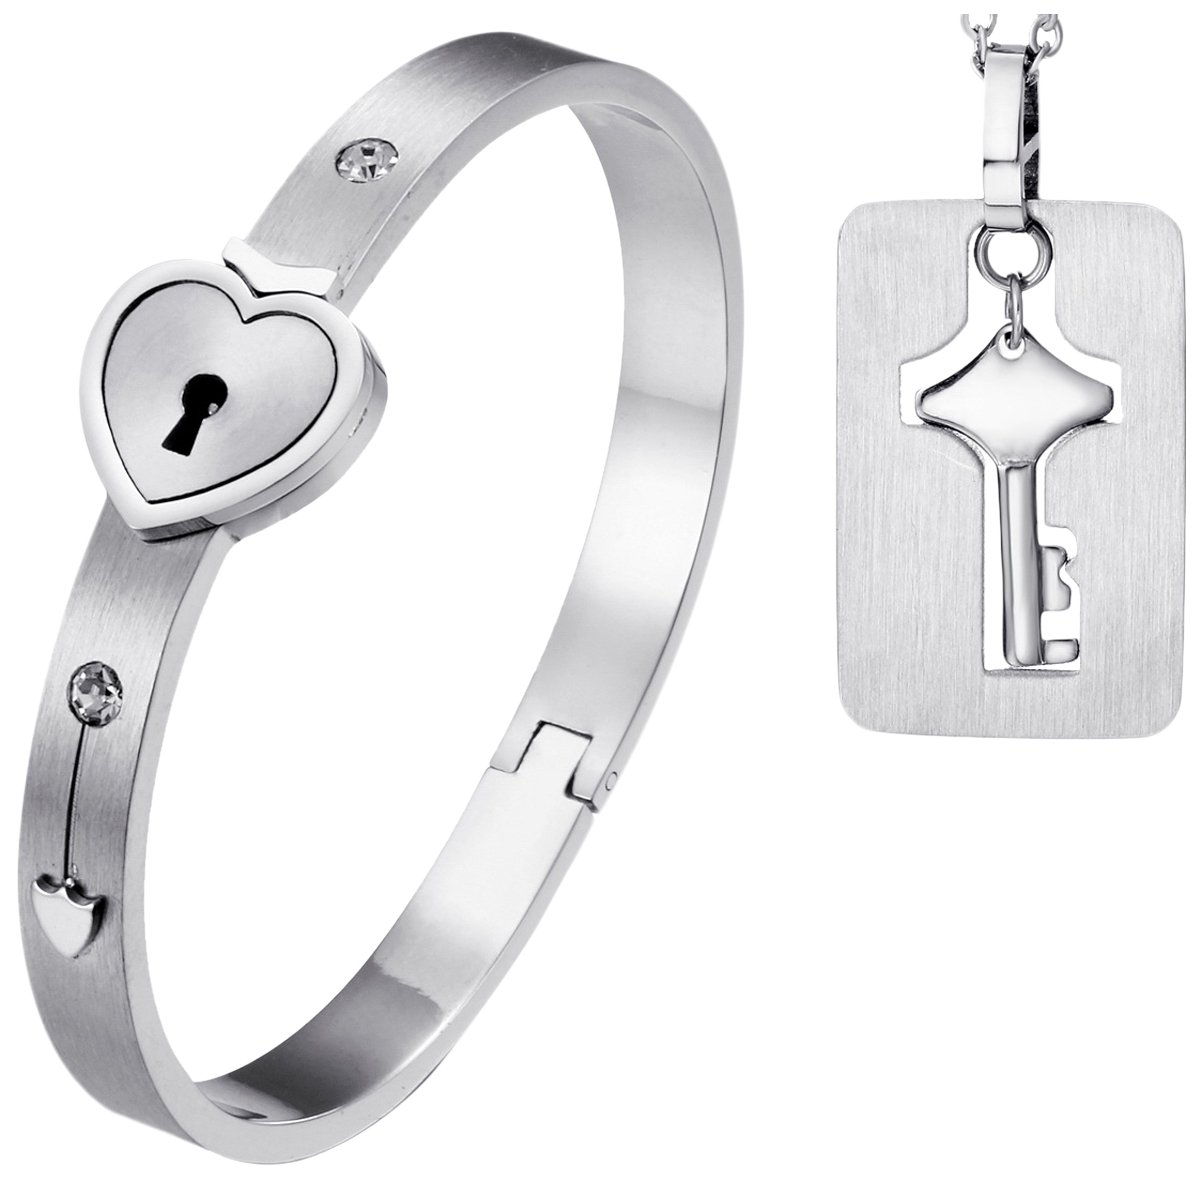 Oidea 2pcs His and Hers Love Heart Lock Matching Bangle Bracelet for 5.5-6 Inch Wrist, Tag Pendat Necklace by Oidea